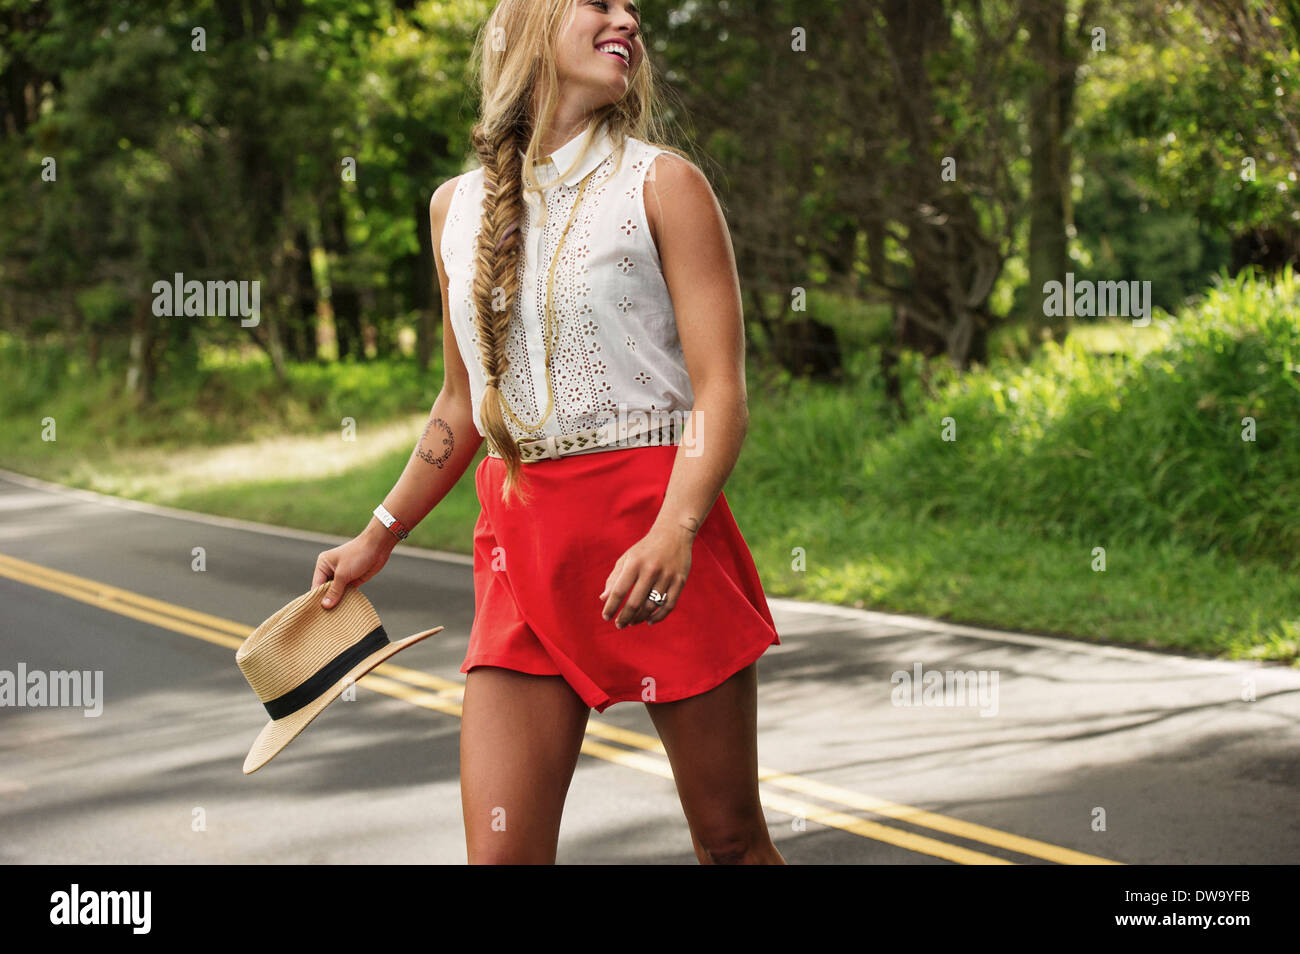 Young woman with hat crossing road - Stock Image